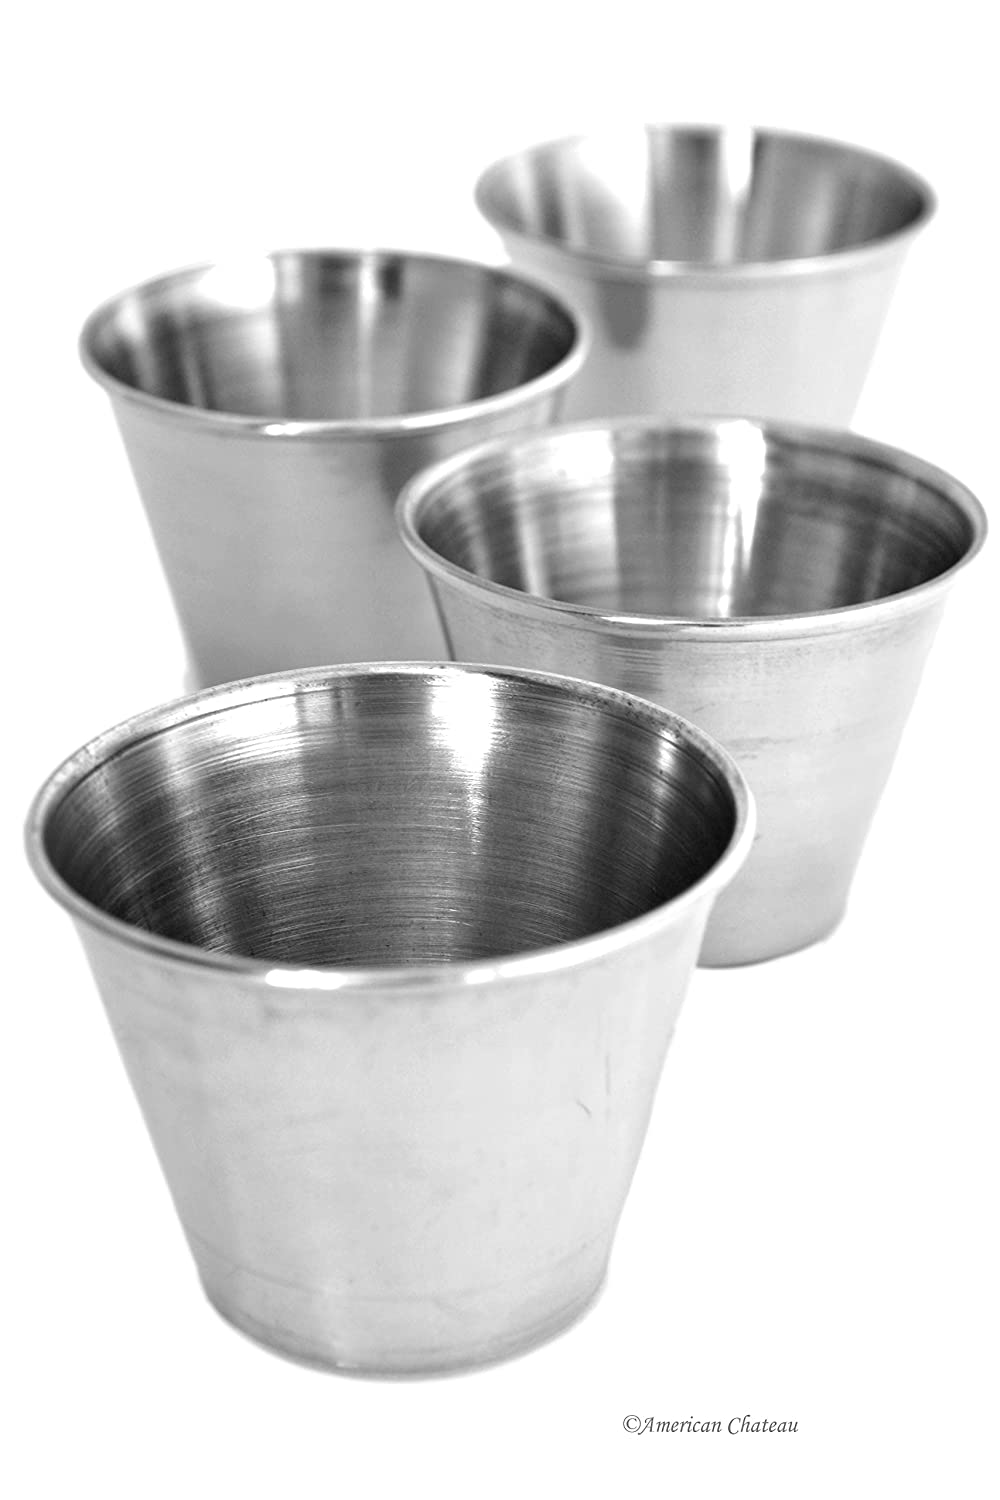 Set of 4 Restaurant-Style Stainless Steel Individual Garnish Sauce Dipping Bowls American Chateau